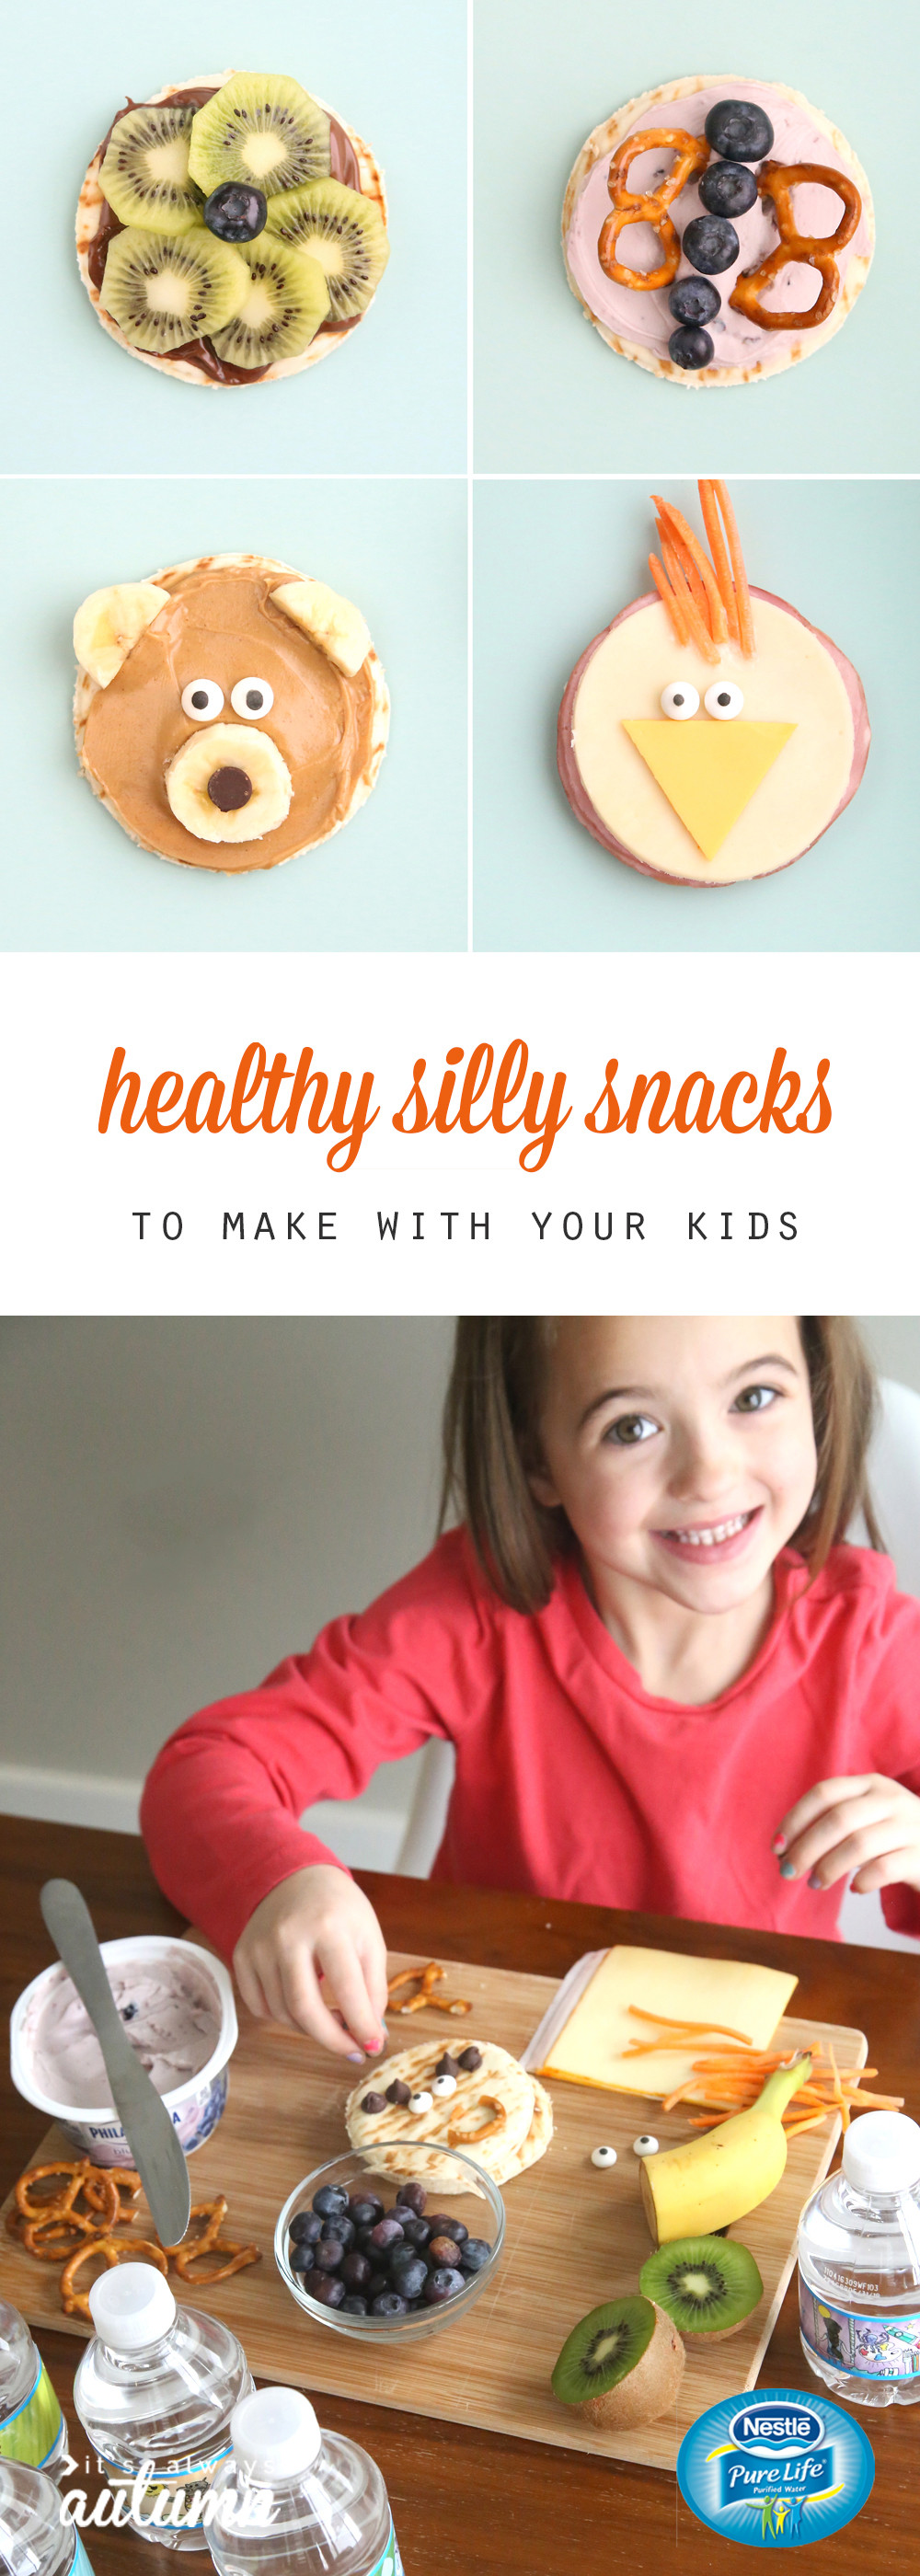 Easy To Make Healthy Snacks  silly snacks to make with your kids easy healthy It